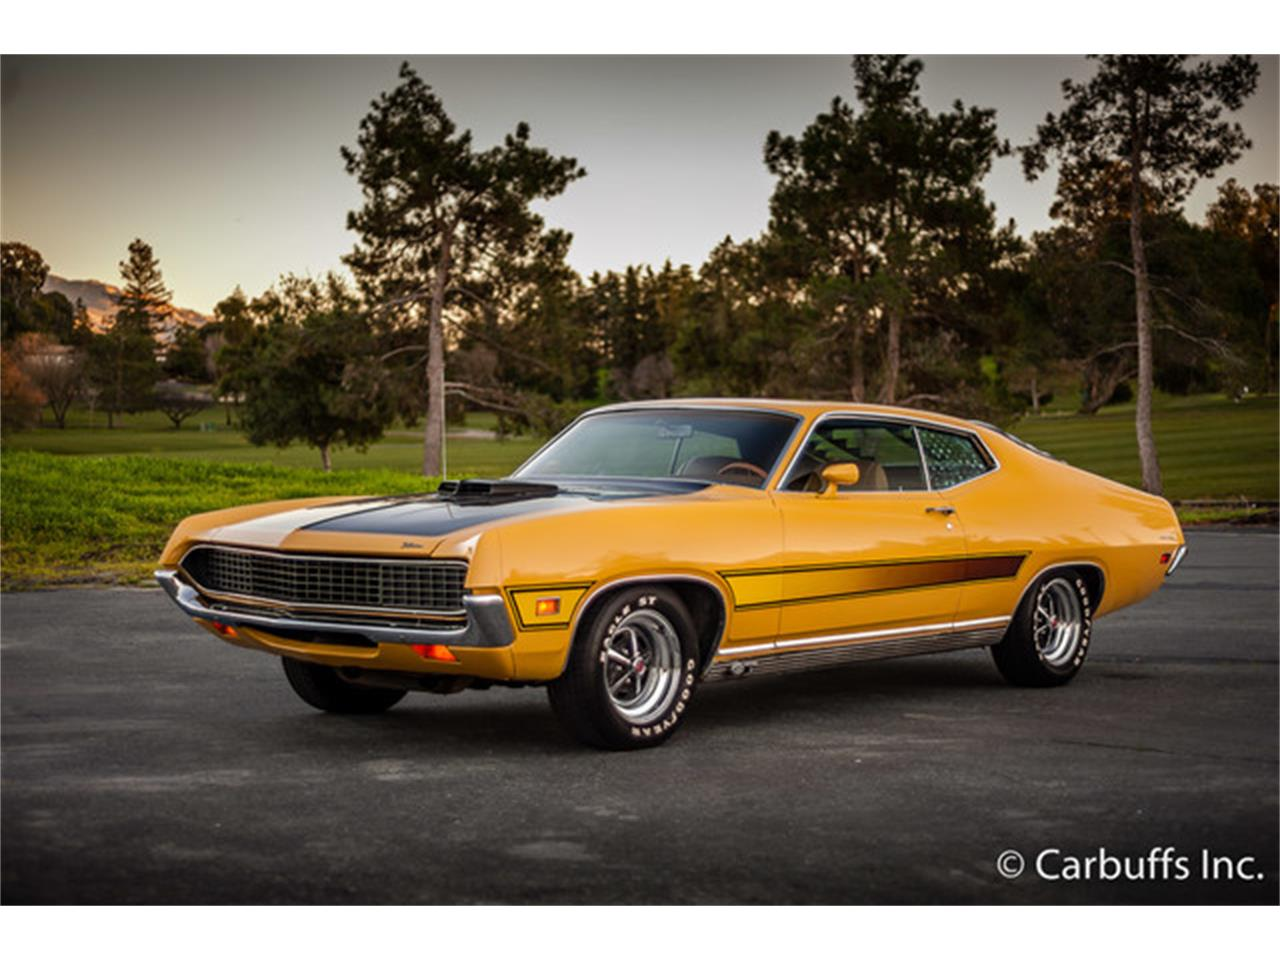 Large picture of 71 torino og38